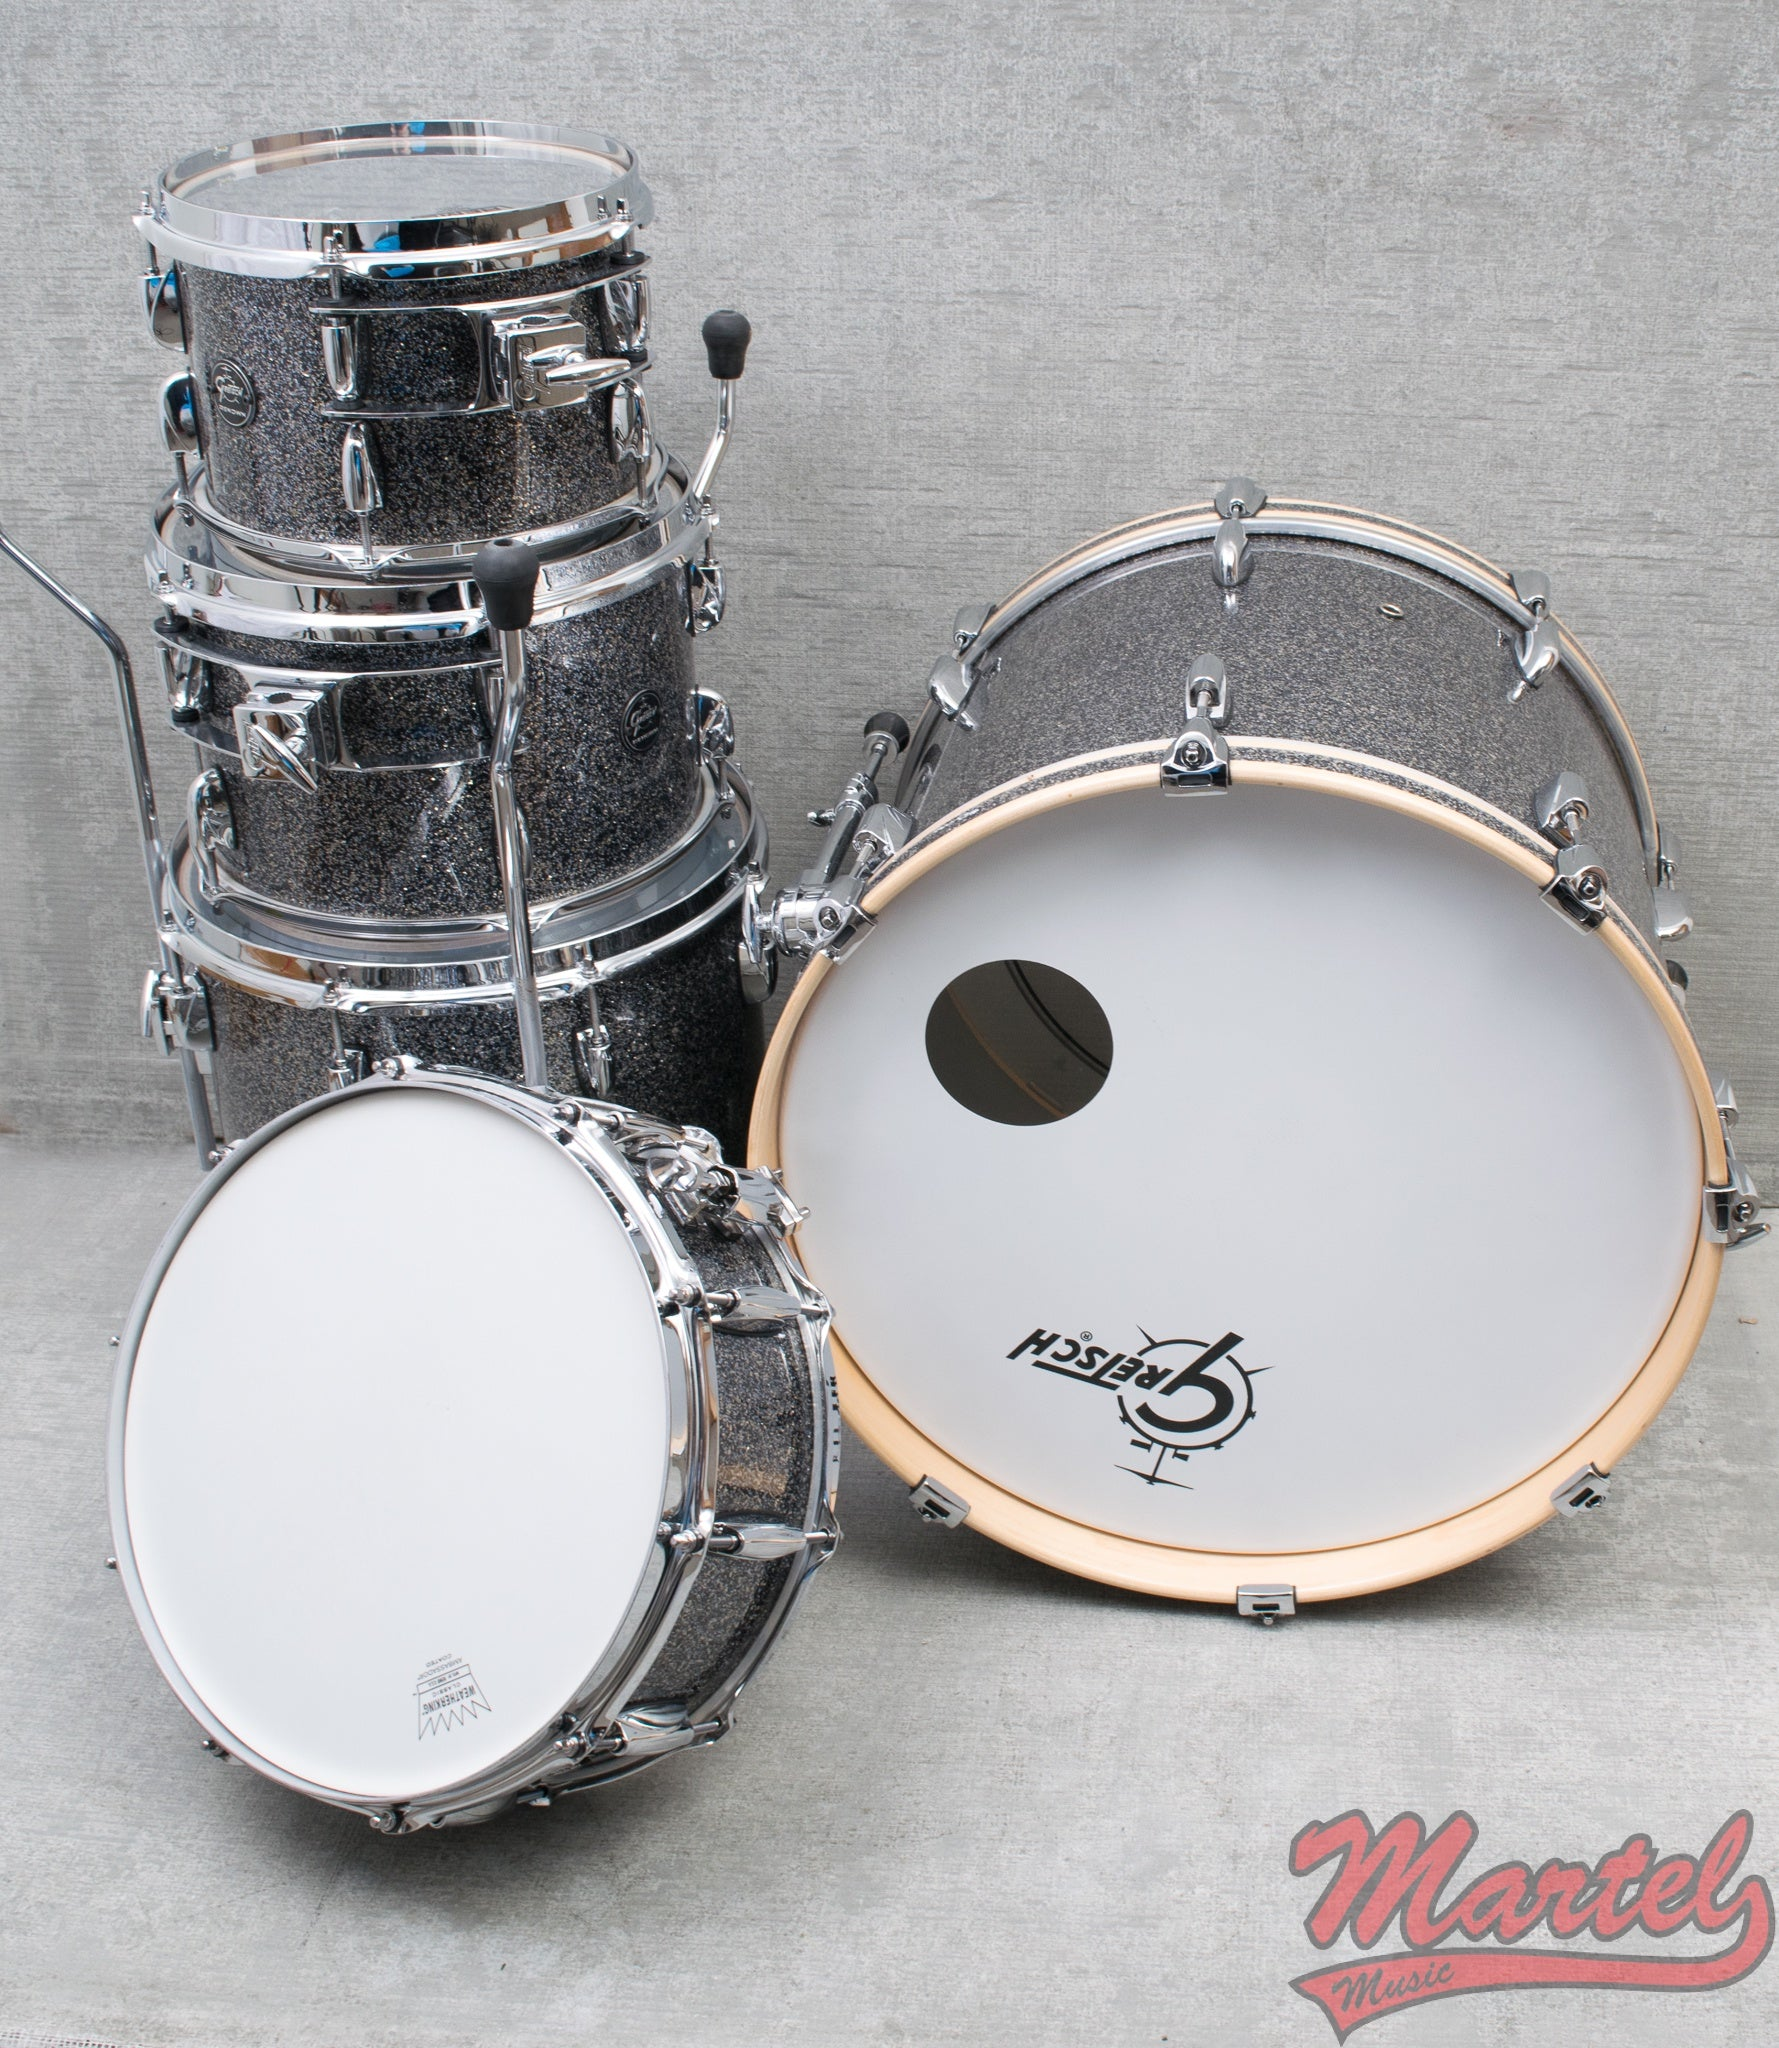 Drums & Percussion - Martel Music Store